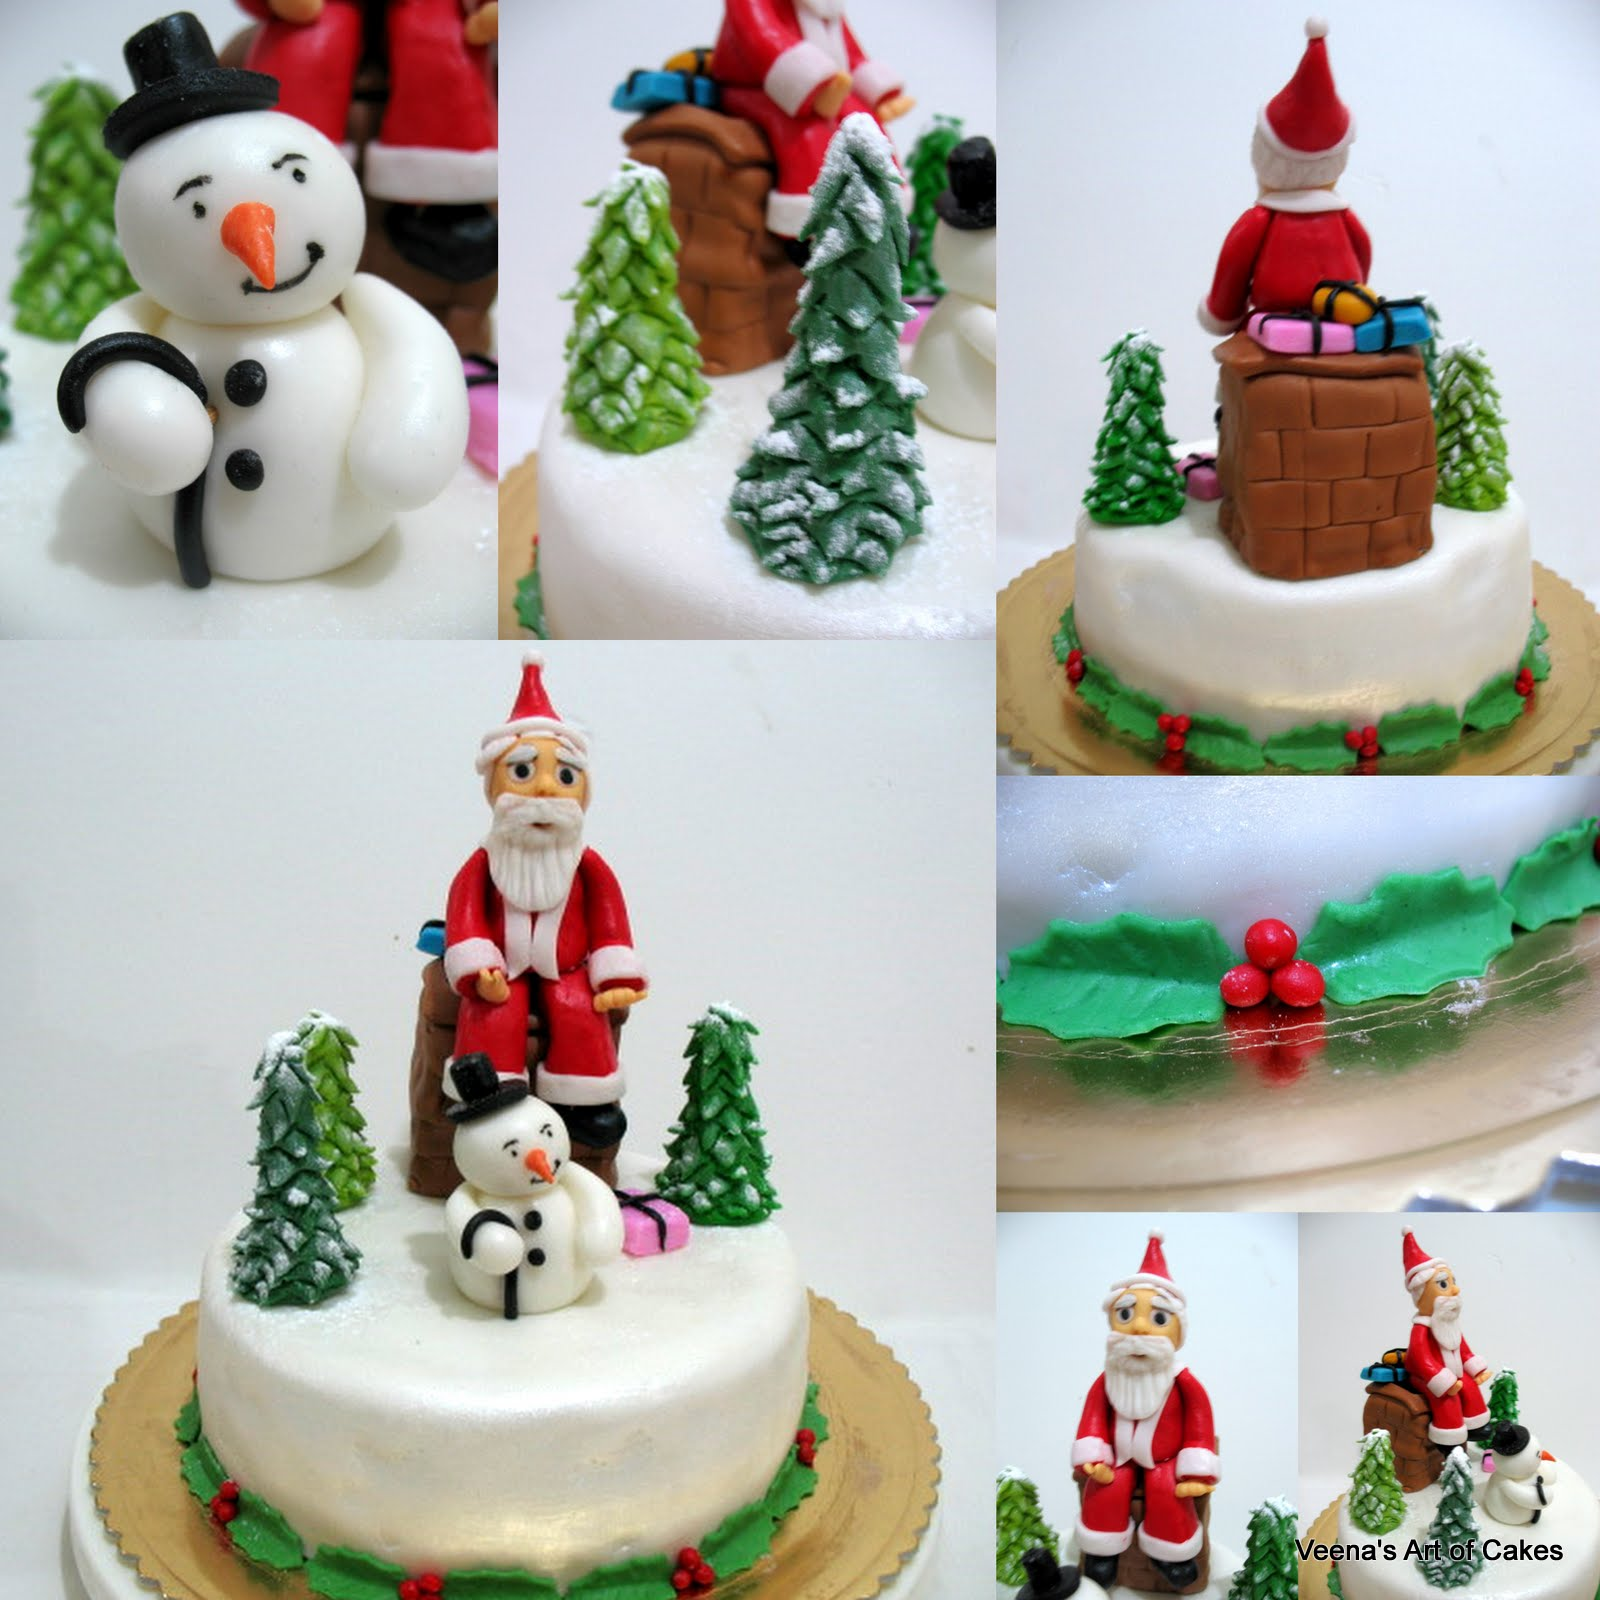 How to make a father christmas cake decoration - How To Make A Christmas Cake